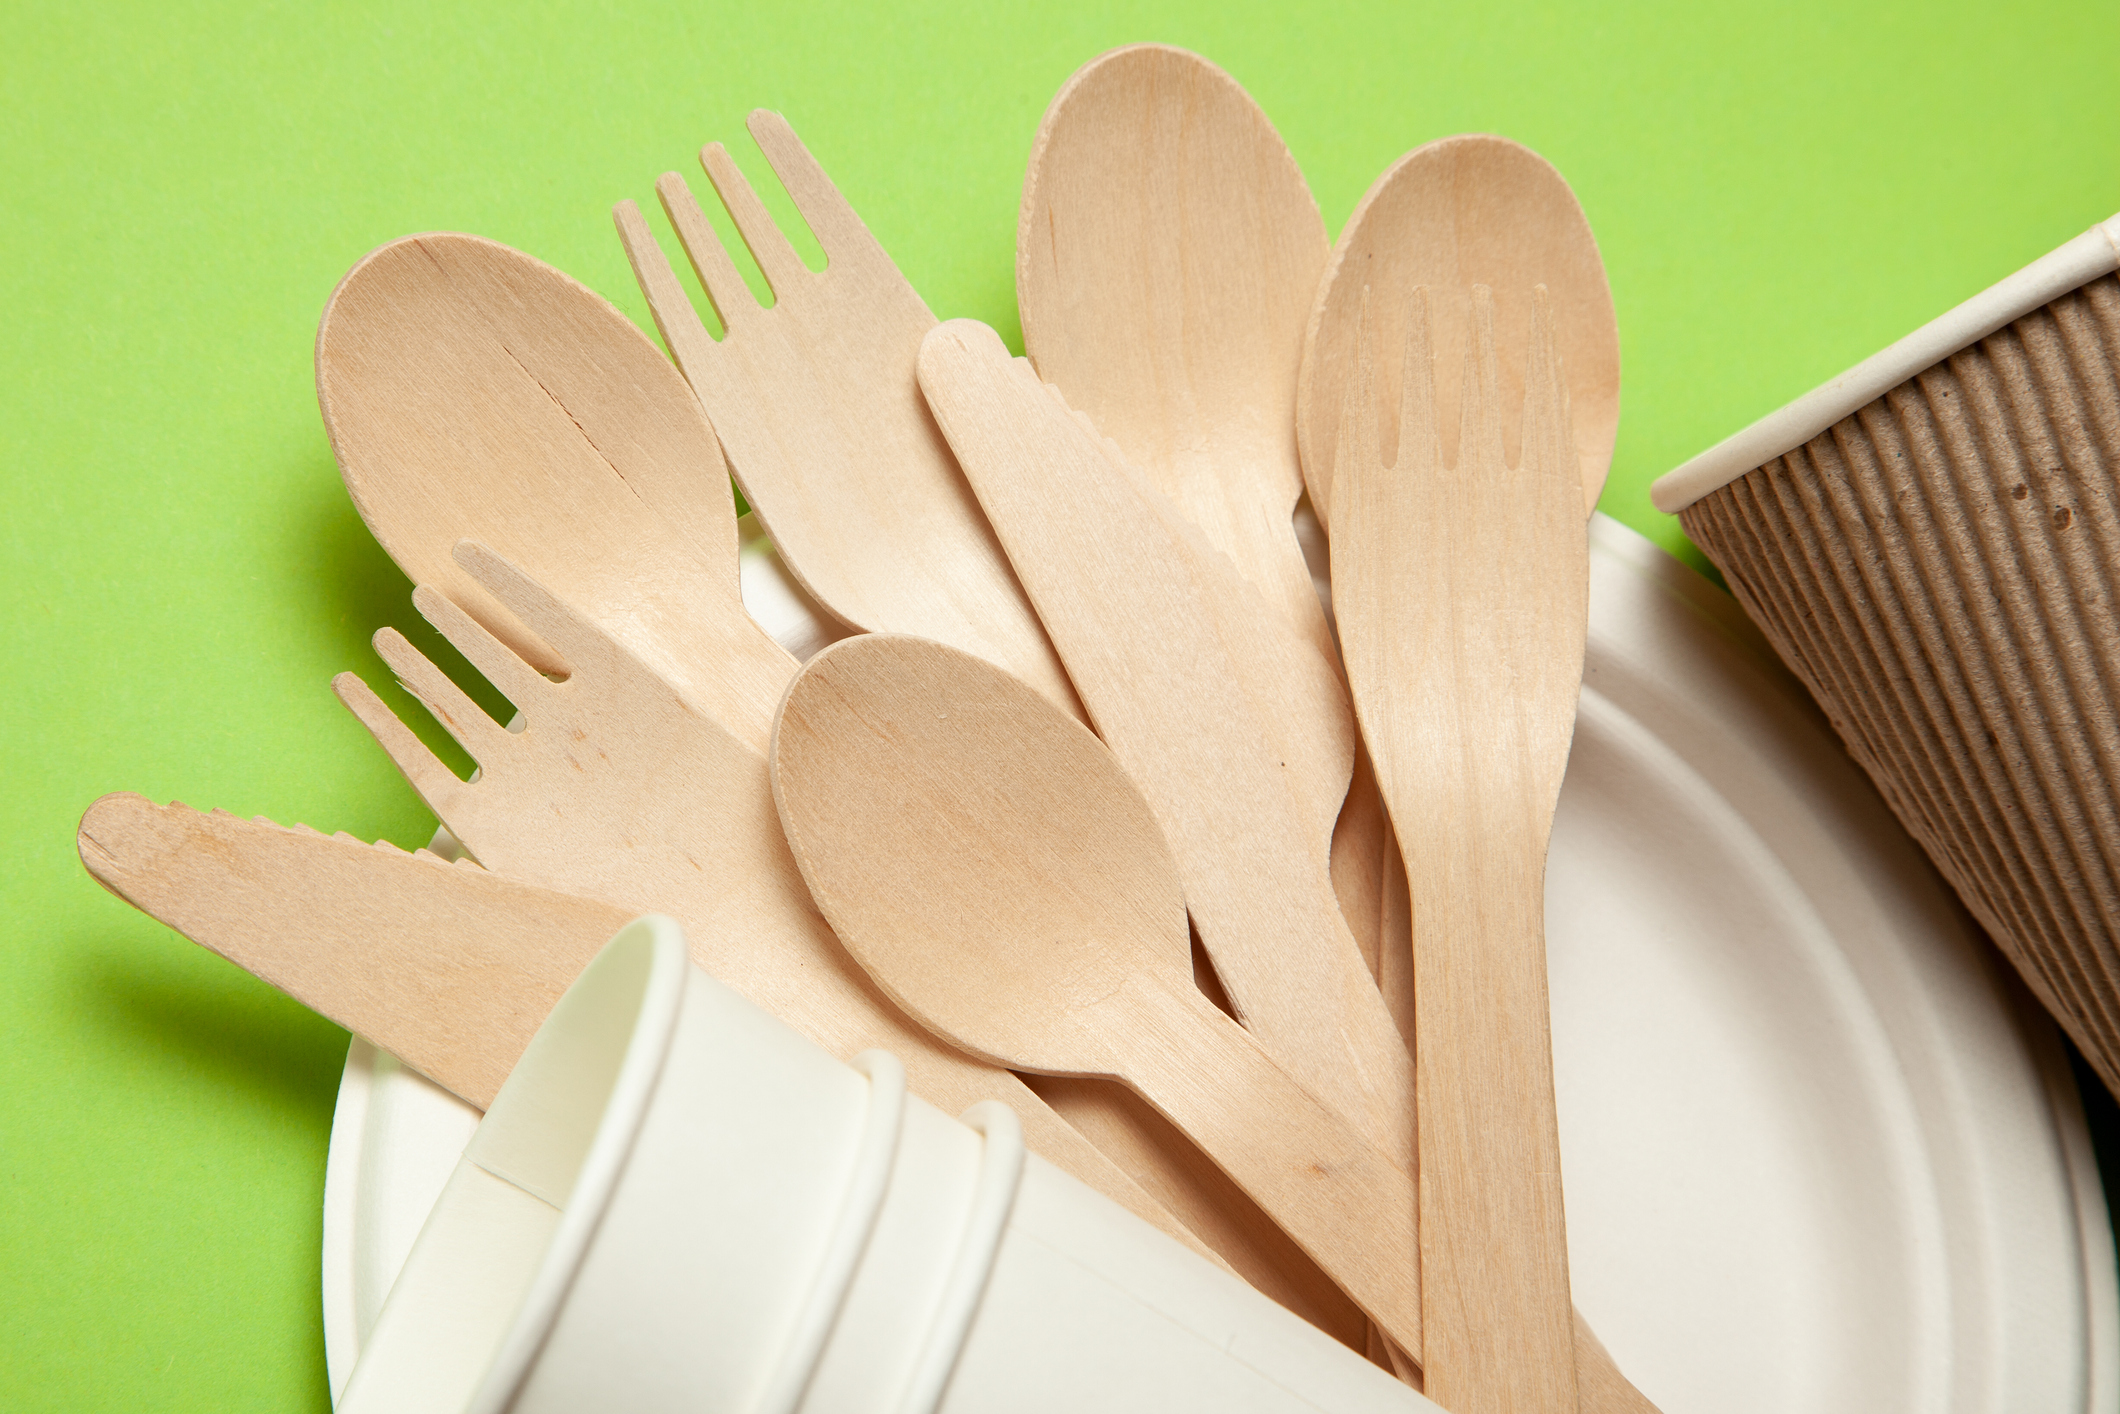 Eco-friendly disposable utensils made of bamboo wood and paper on a green background.